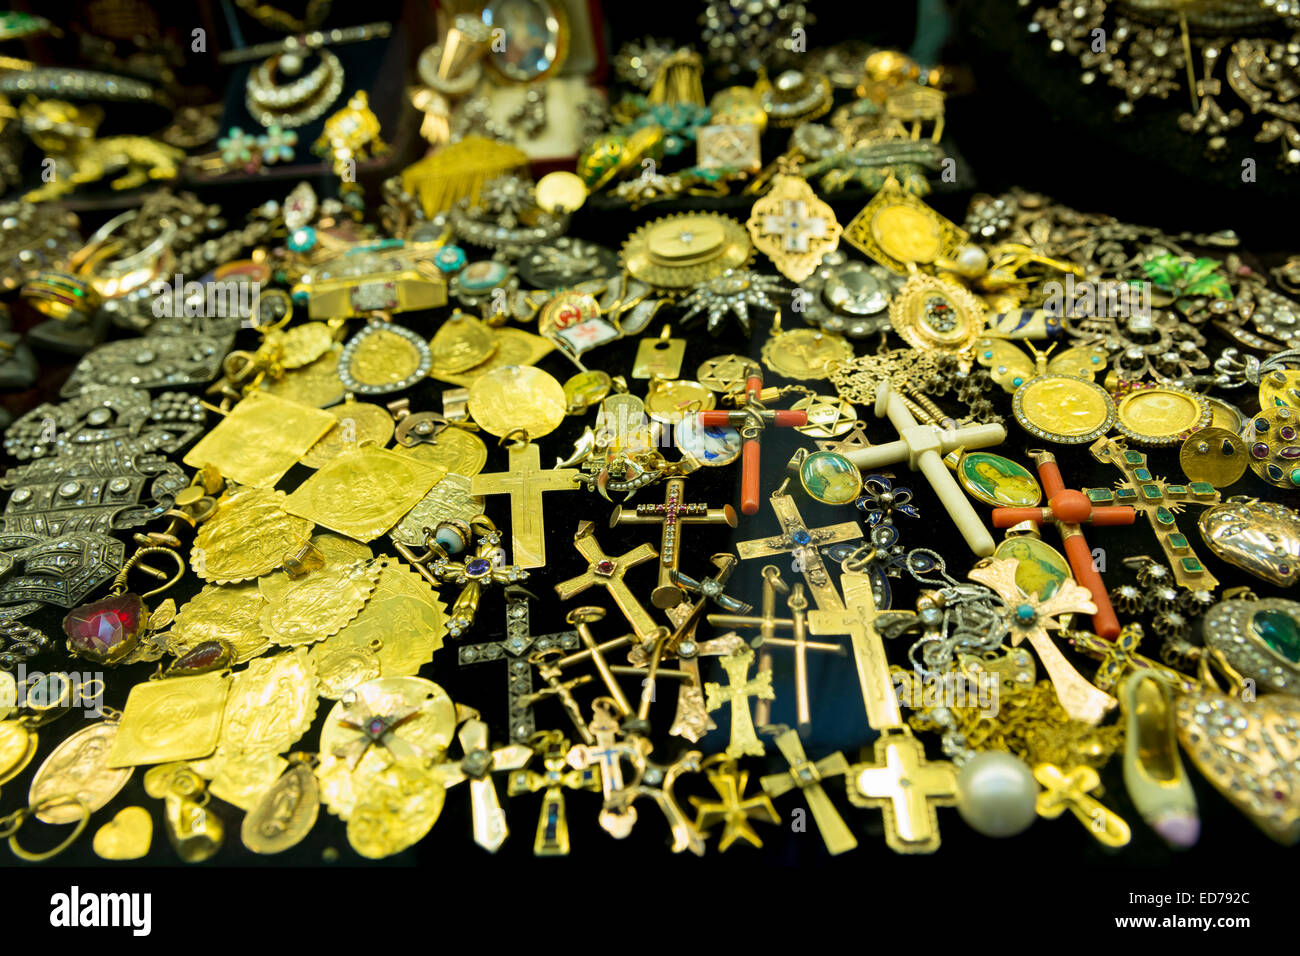 Gold jewelry religious icons and cross in The Grand Bazaar Stock